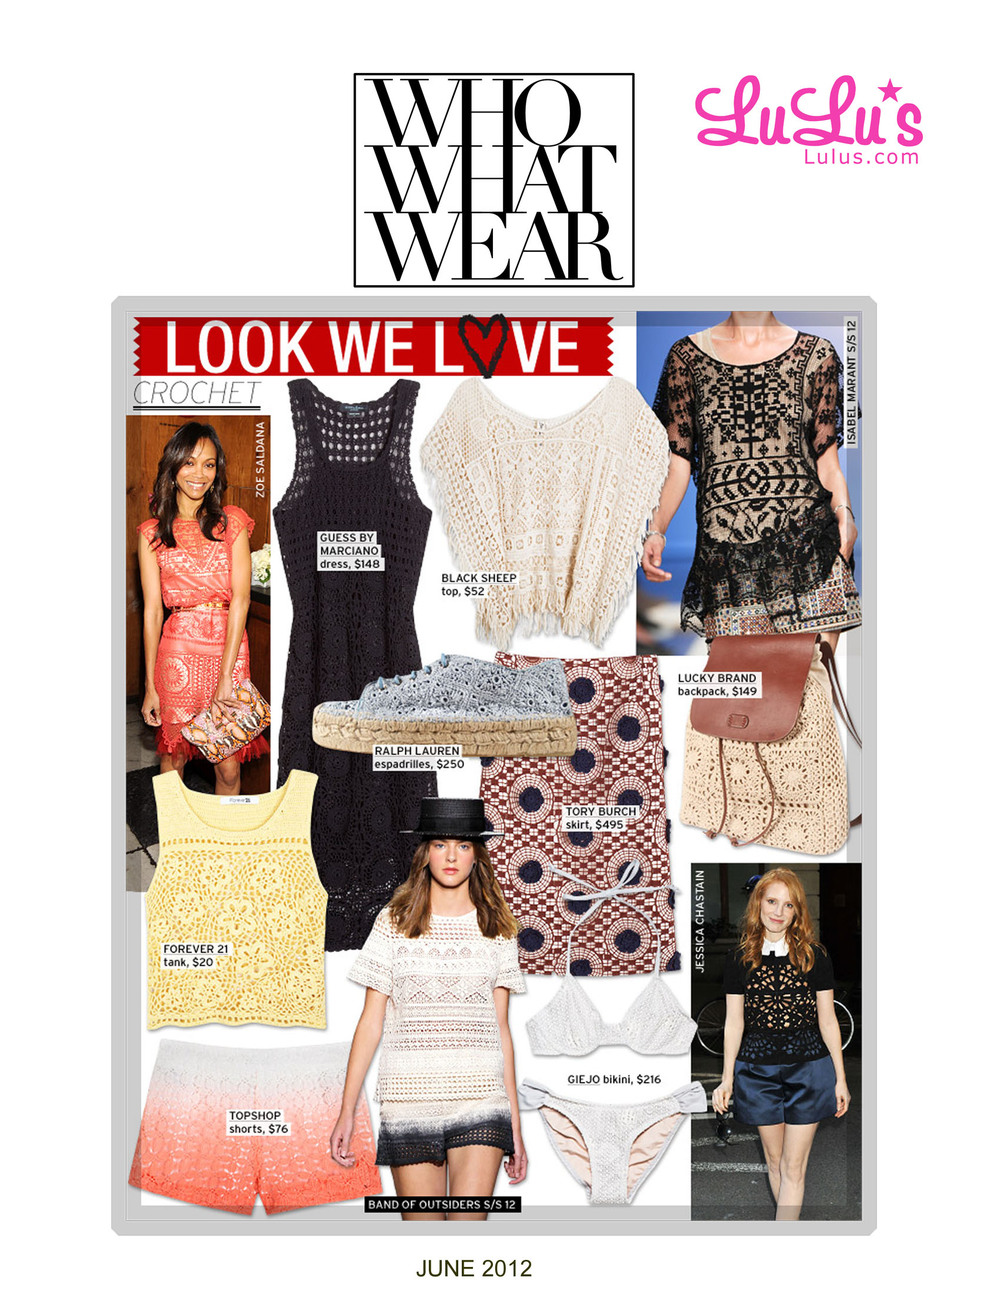 WhoWhatWear_June142012_HopiEdit.jpg